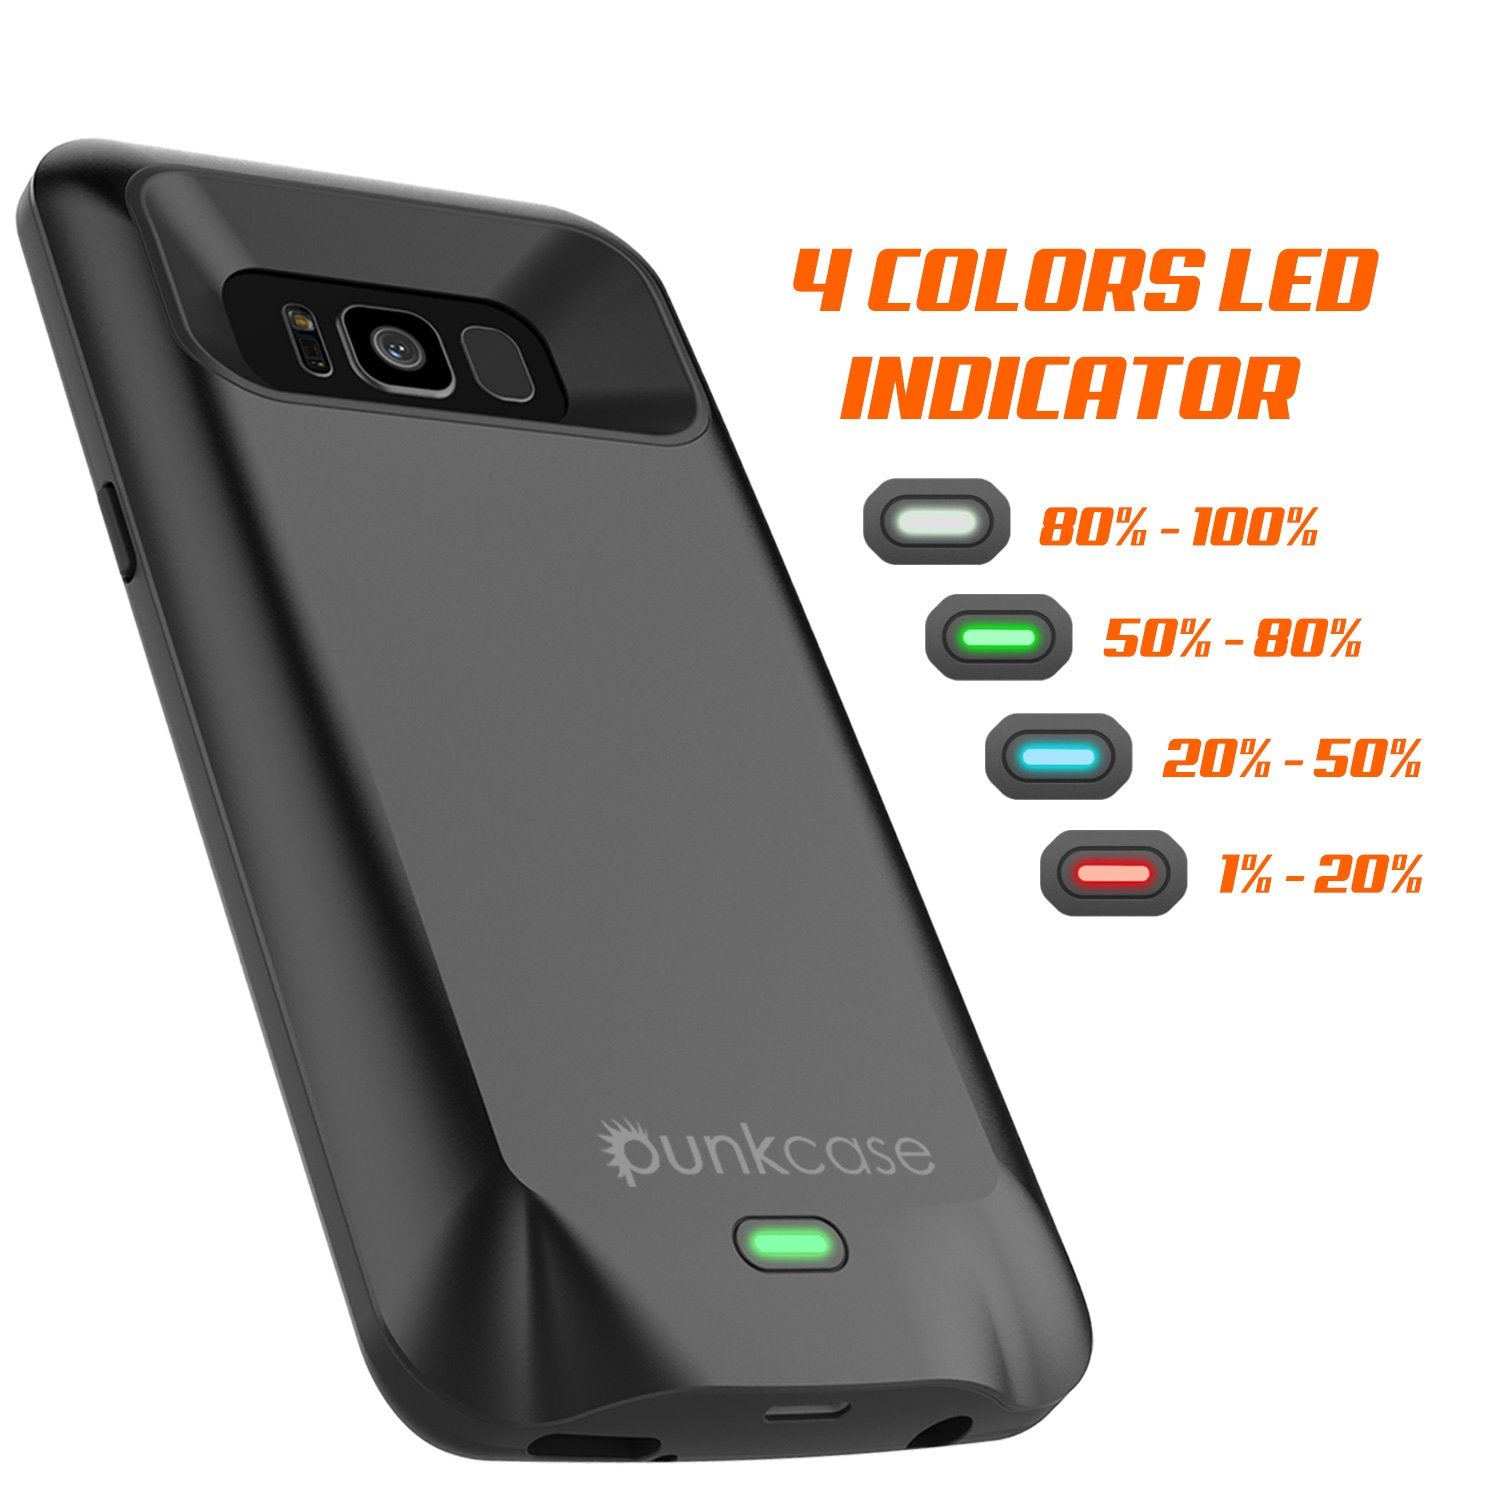 size 40 be23c 69738 Galaxy S8 PLUS Battery Case, Punkcase 5500mAH Charger Case W/ Screen P